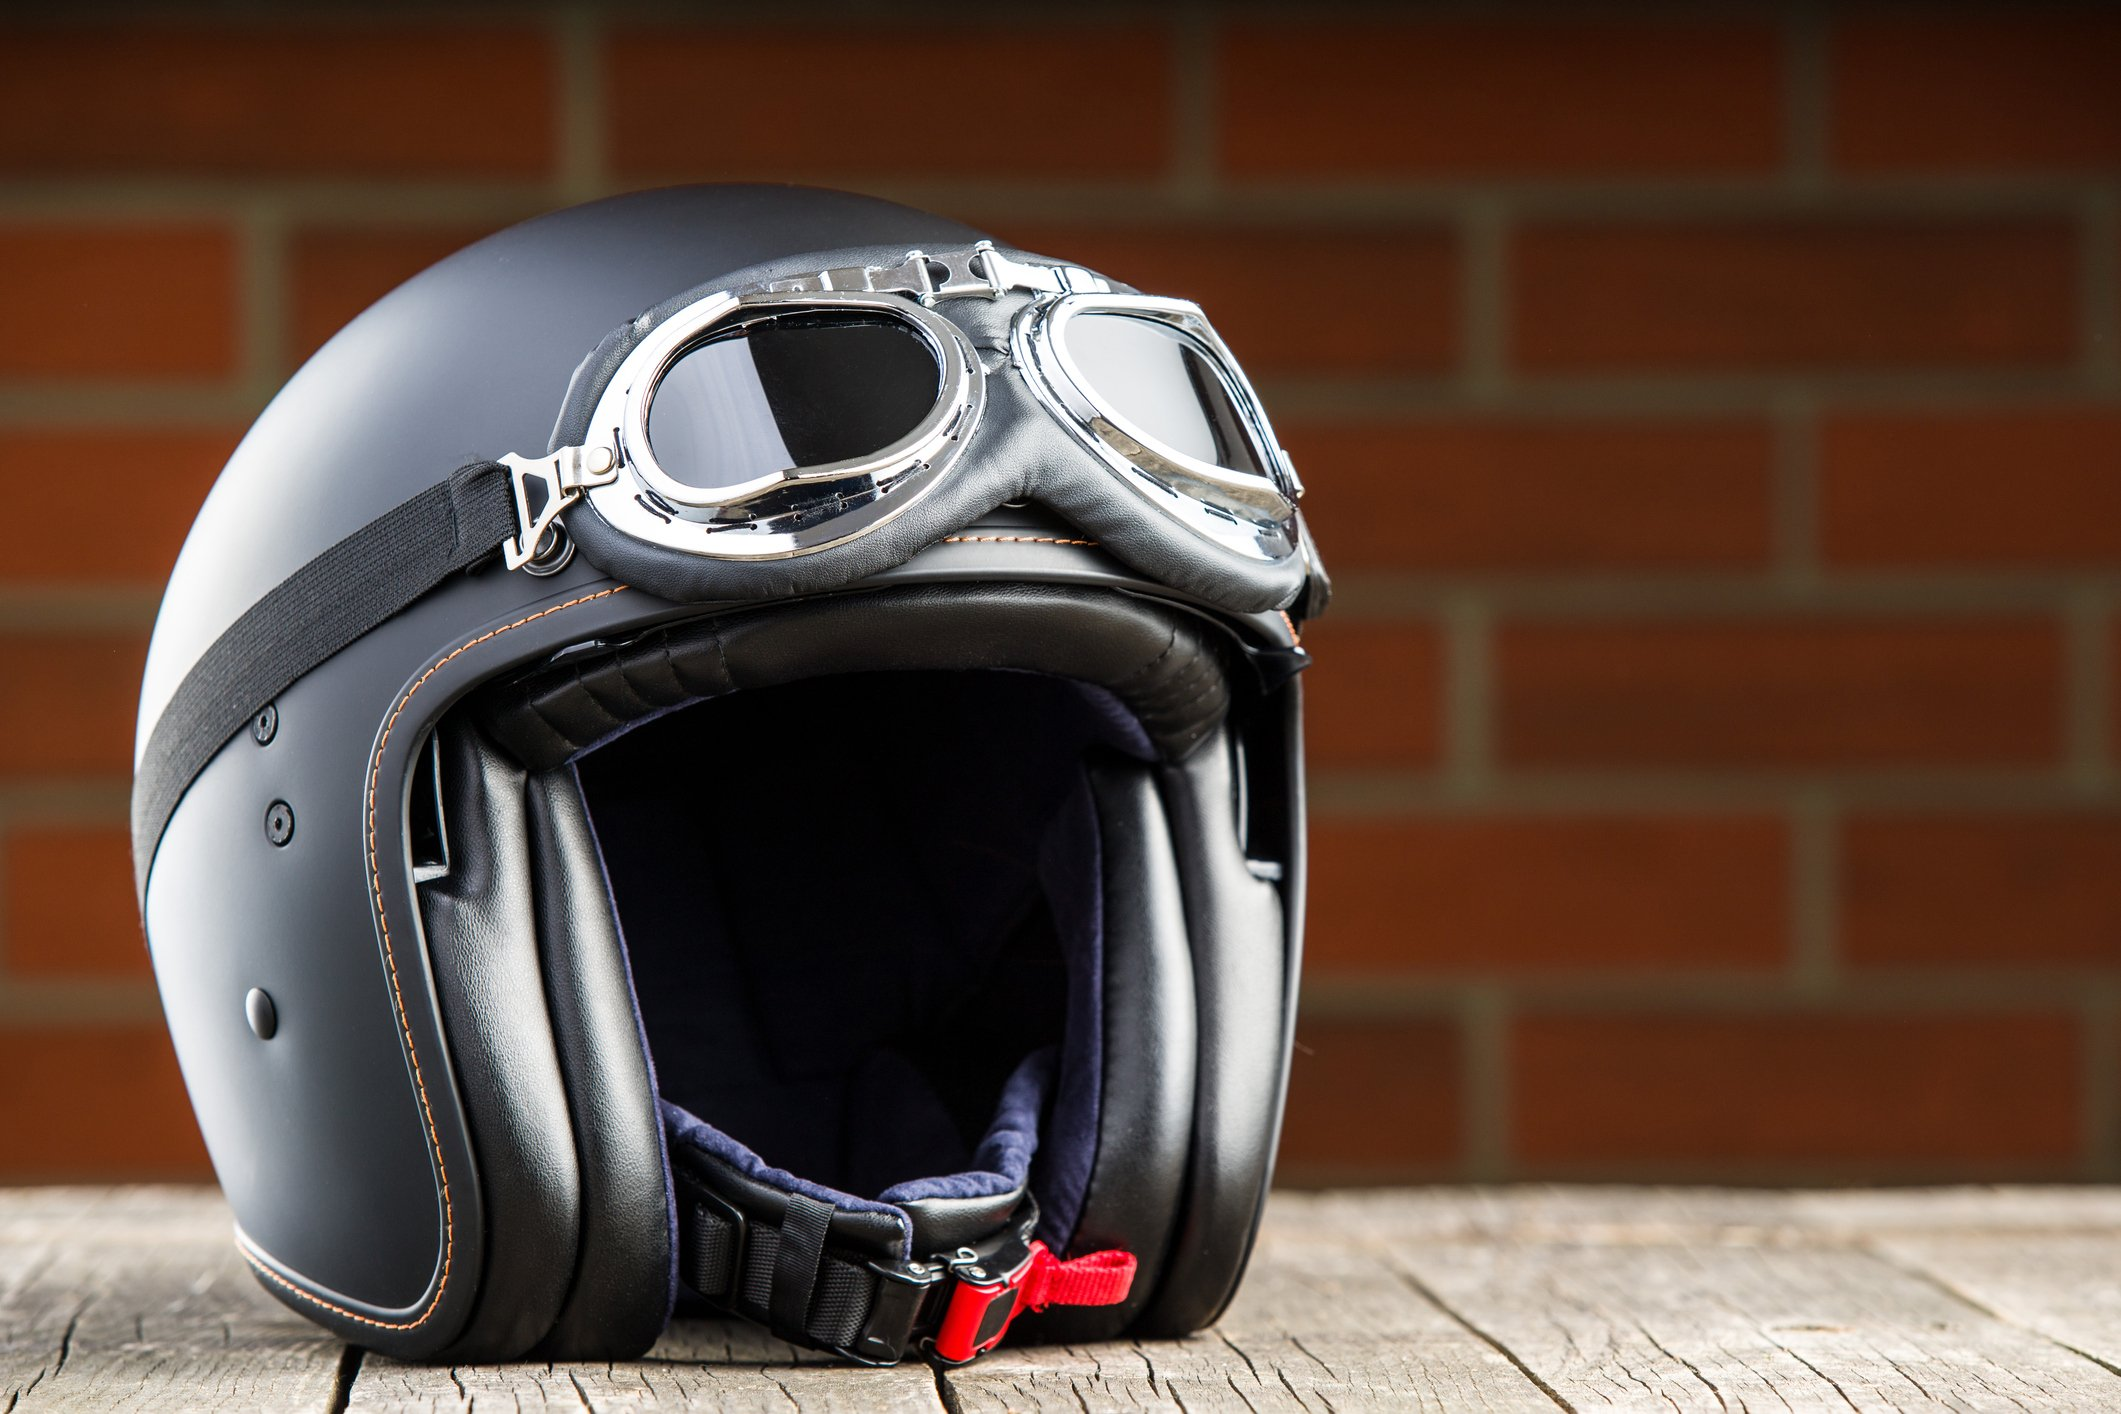 There Is No Way You're Not Swapping Sweat With a Stranger in DC's New Moped Helmets | Washingtonian (DC)